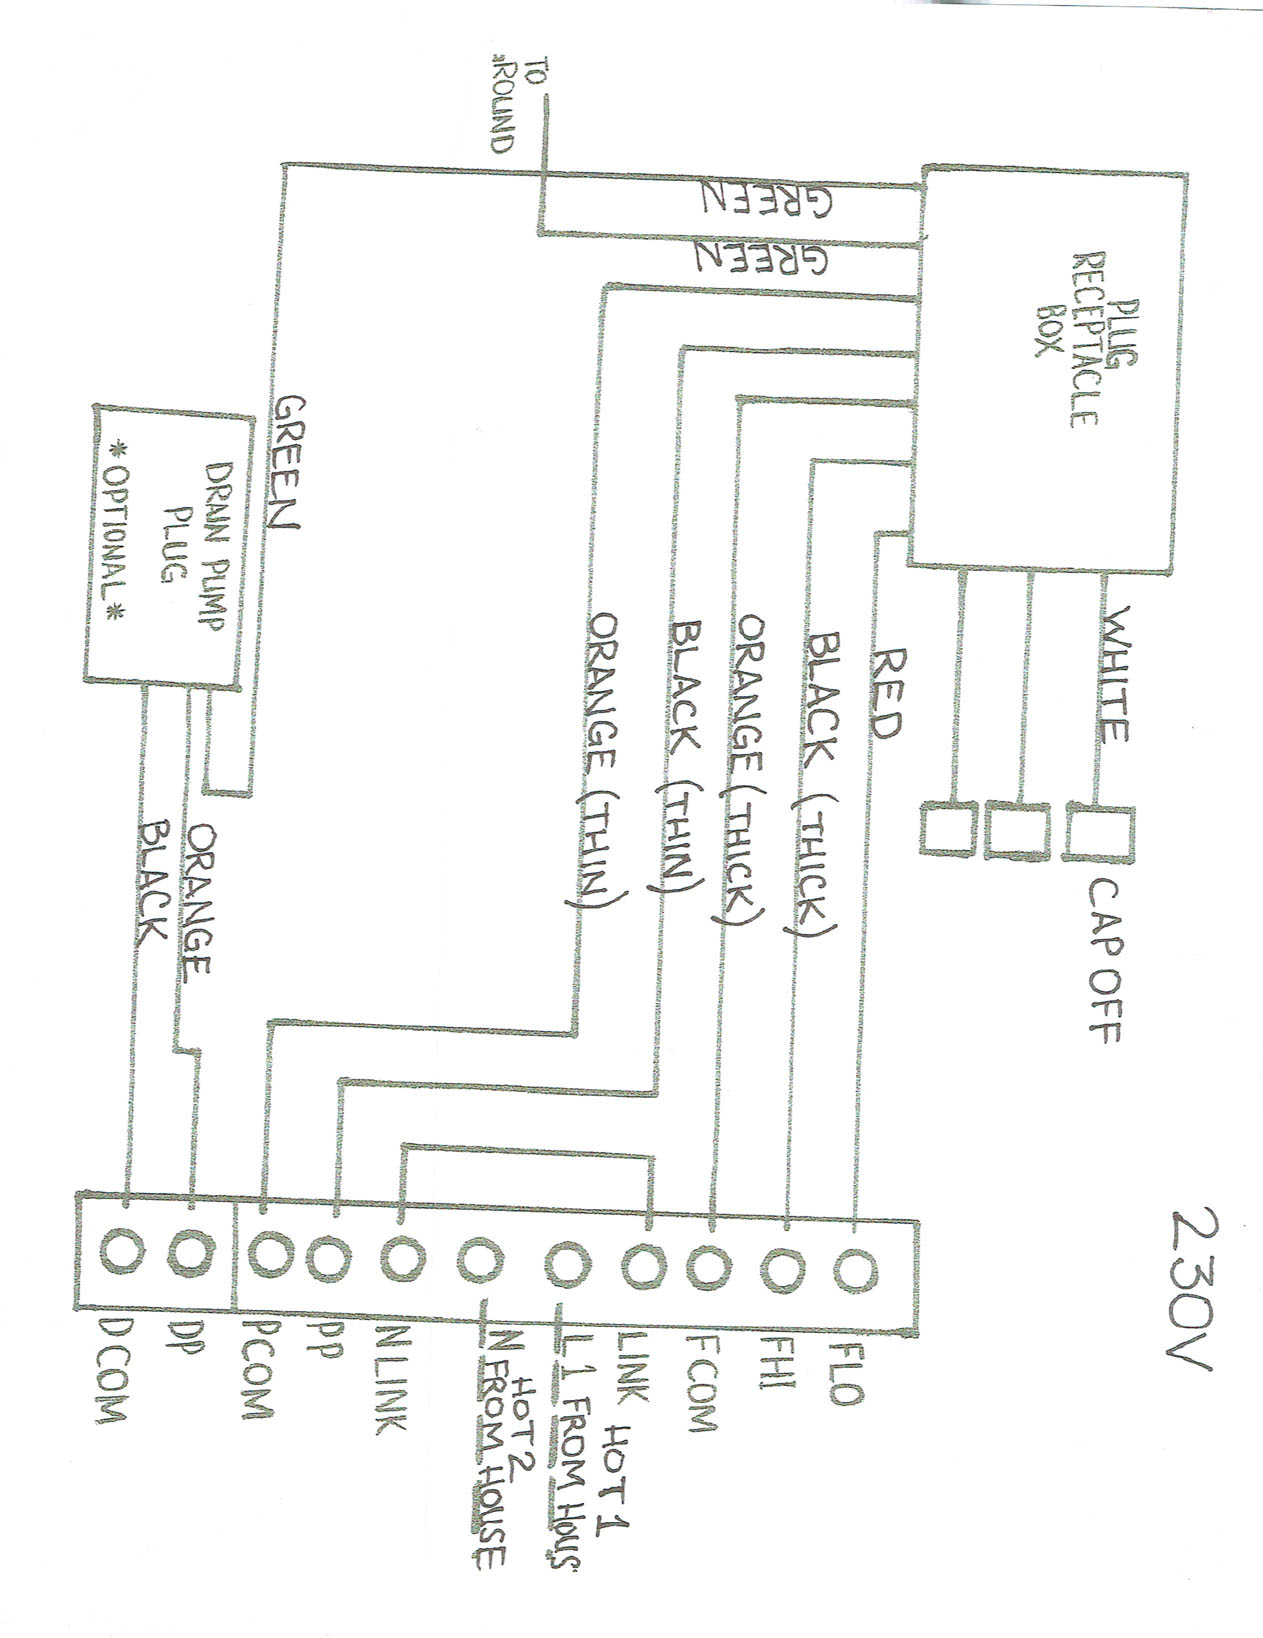 hight resolution of audi 7a wiring diagram wiring diagrams 03 audi tt wiring schematic audi 7a wiring diagram